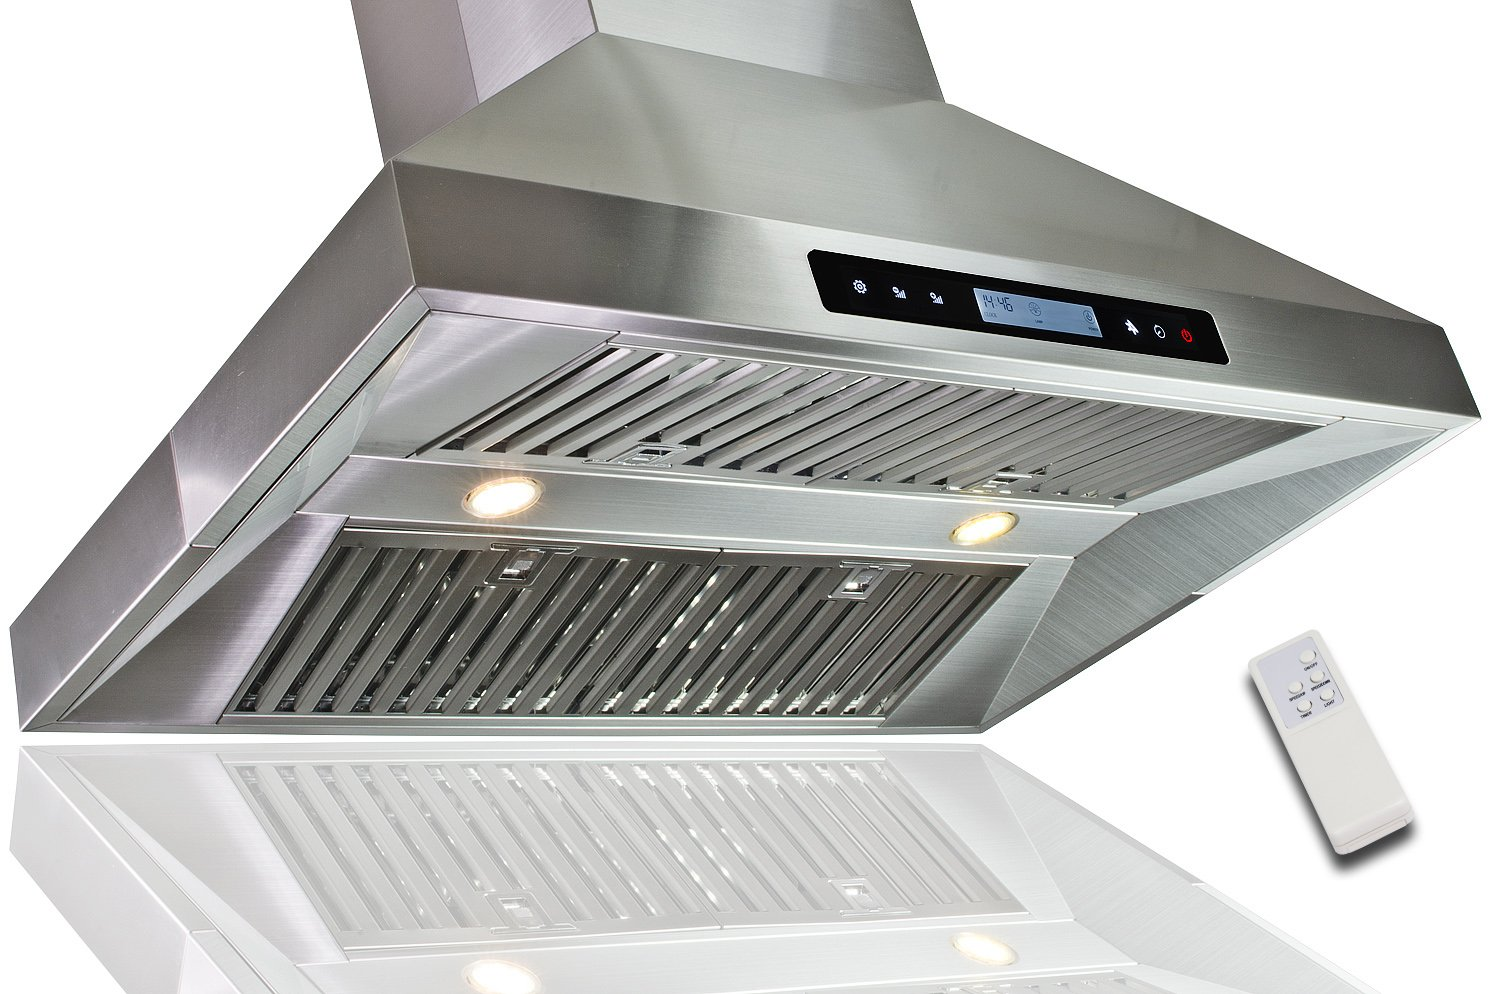 "Golden Vantage New European Style 36"" Kitchen Island Mount Stainless Steel Range Hood Vent w/ Remote Control 10A3-IS36 at Sears.com"